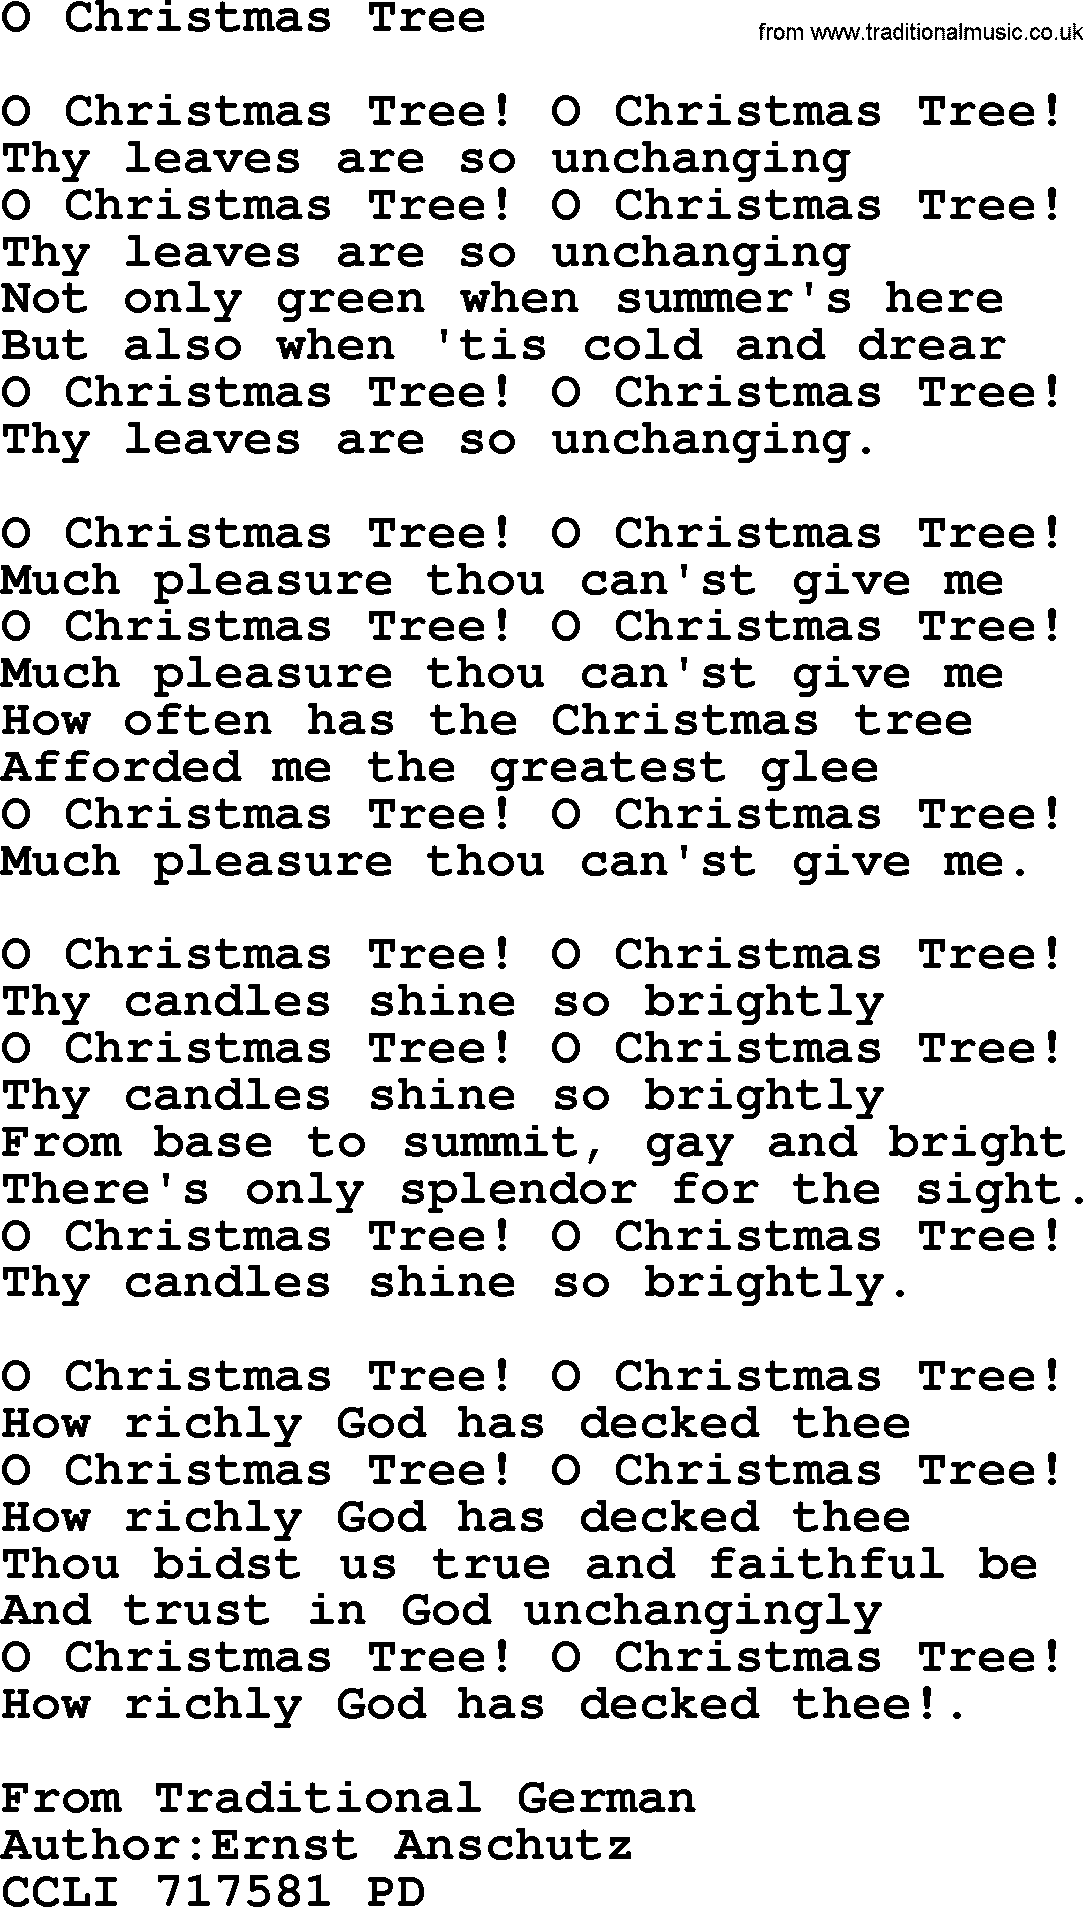 280 christmas hymns and songs with powerpoints and pdf title o christmas tree - O Christmas Tree Lyrics